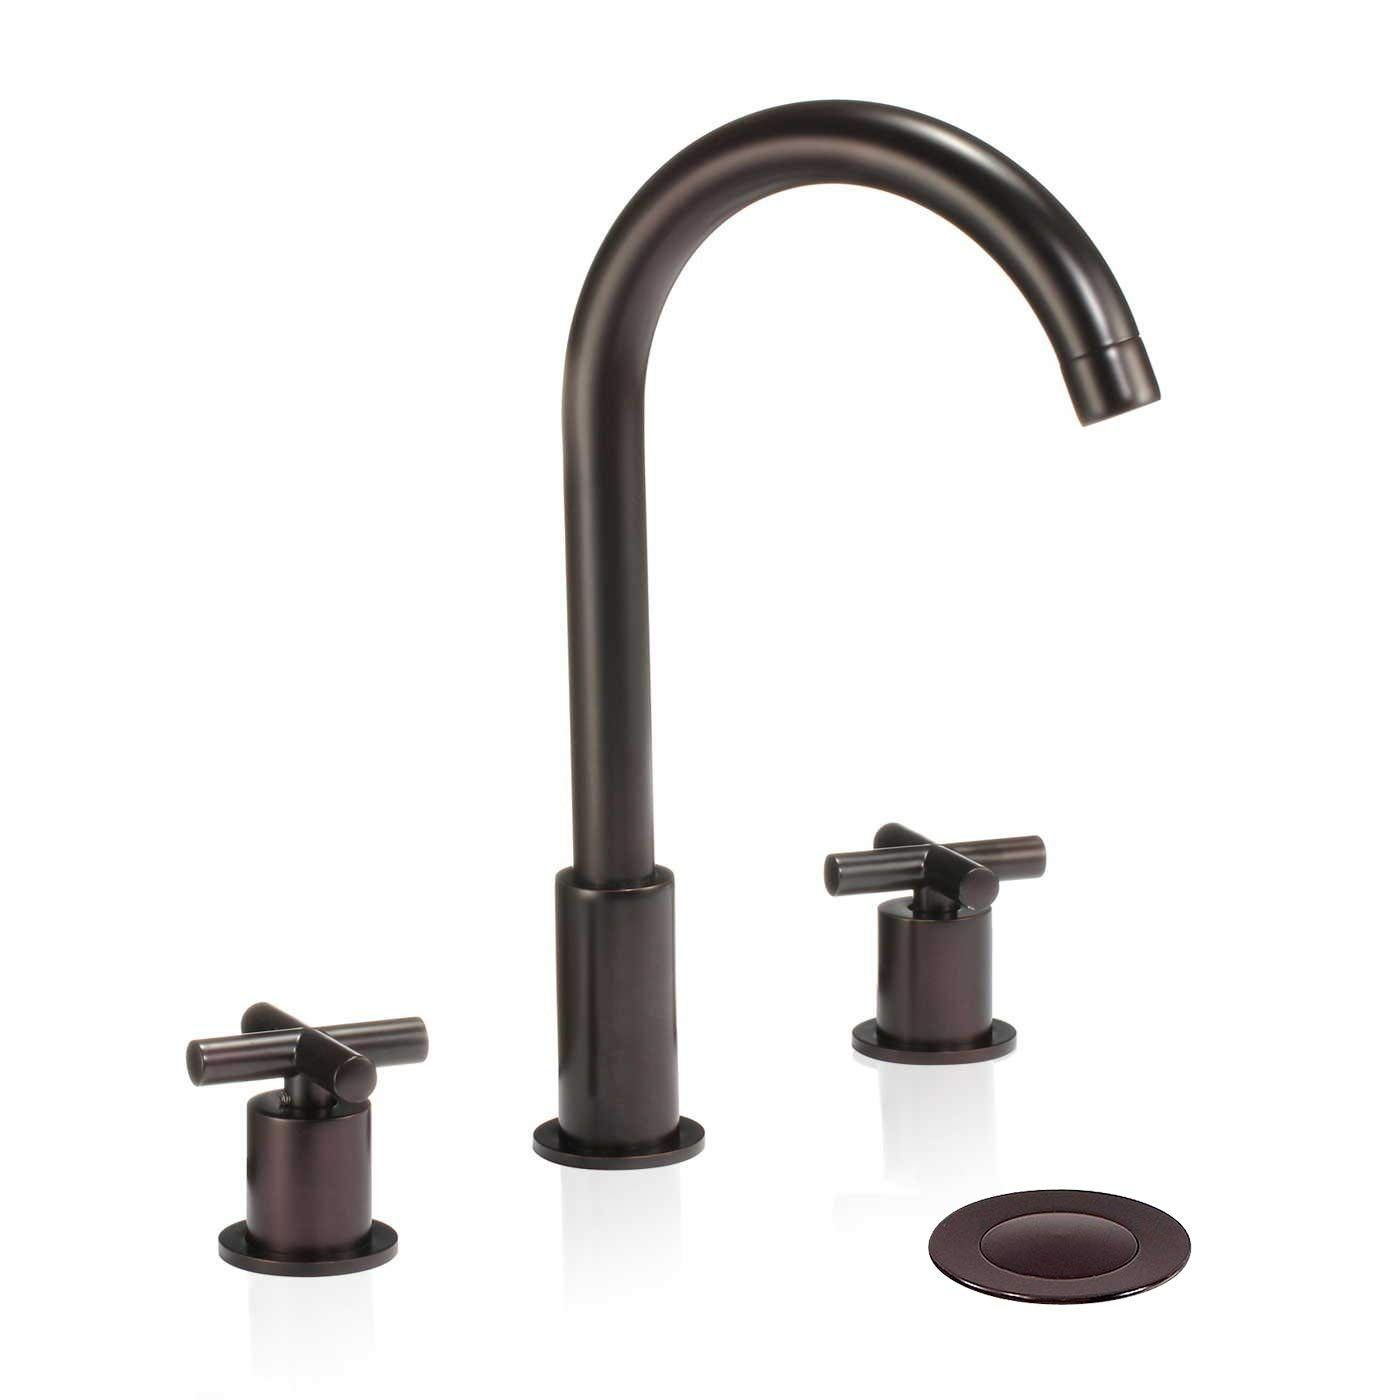 Wovier W 8412 Orb Widespread Bathroom Sink Faucet Oil Rubber